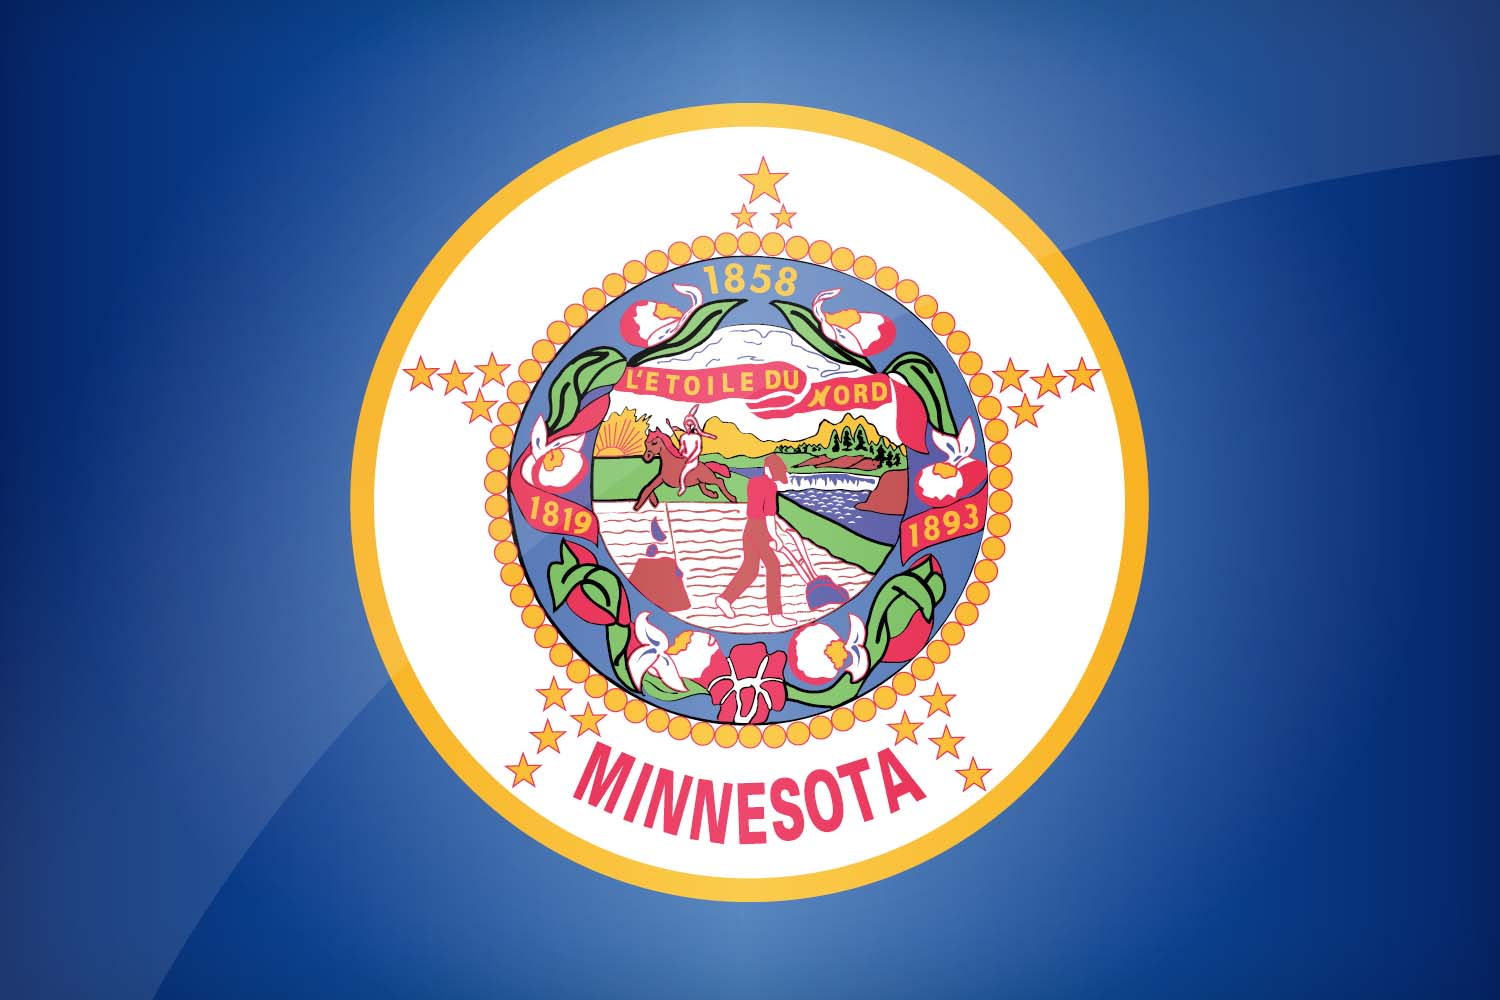 Minnesota Us State Flag Description Download This Flag